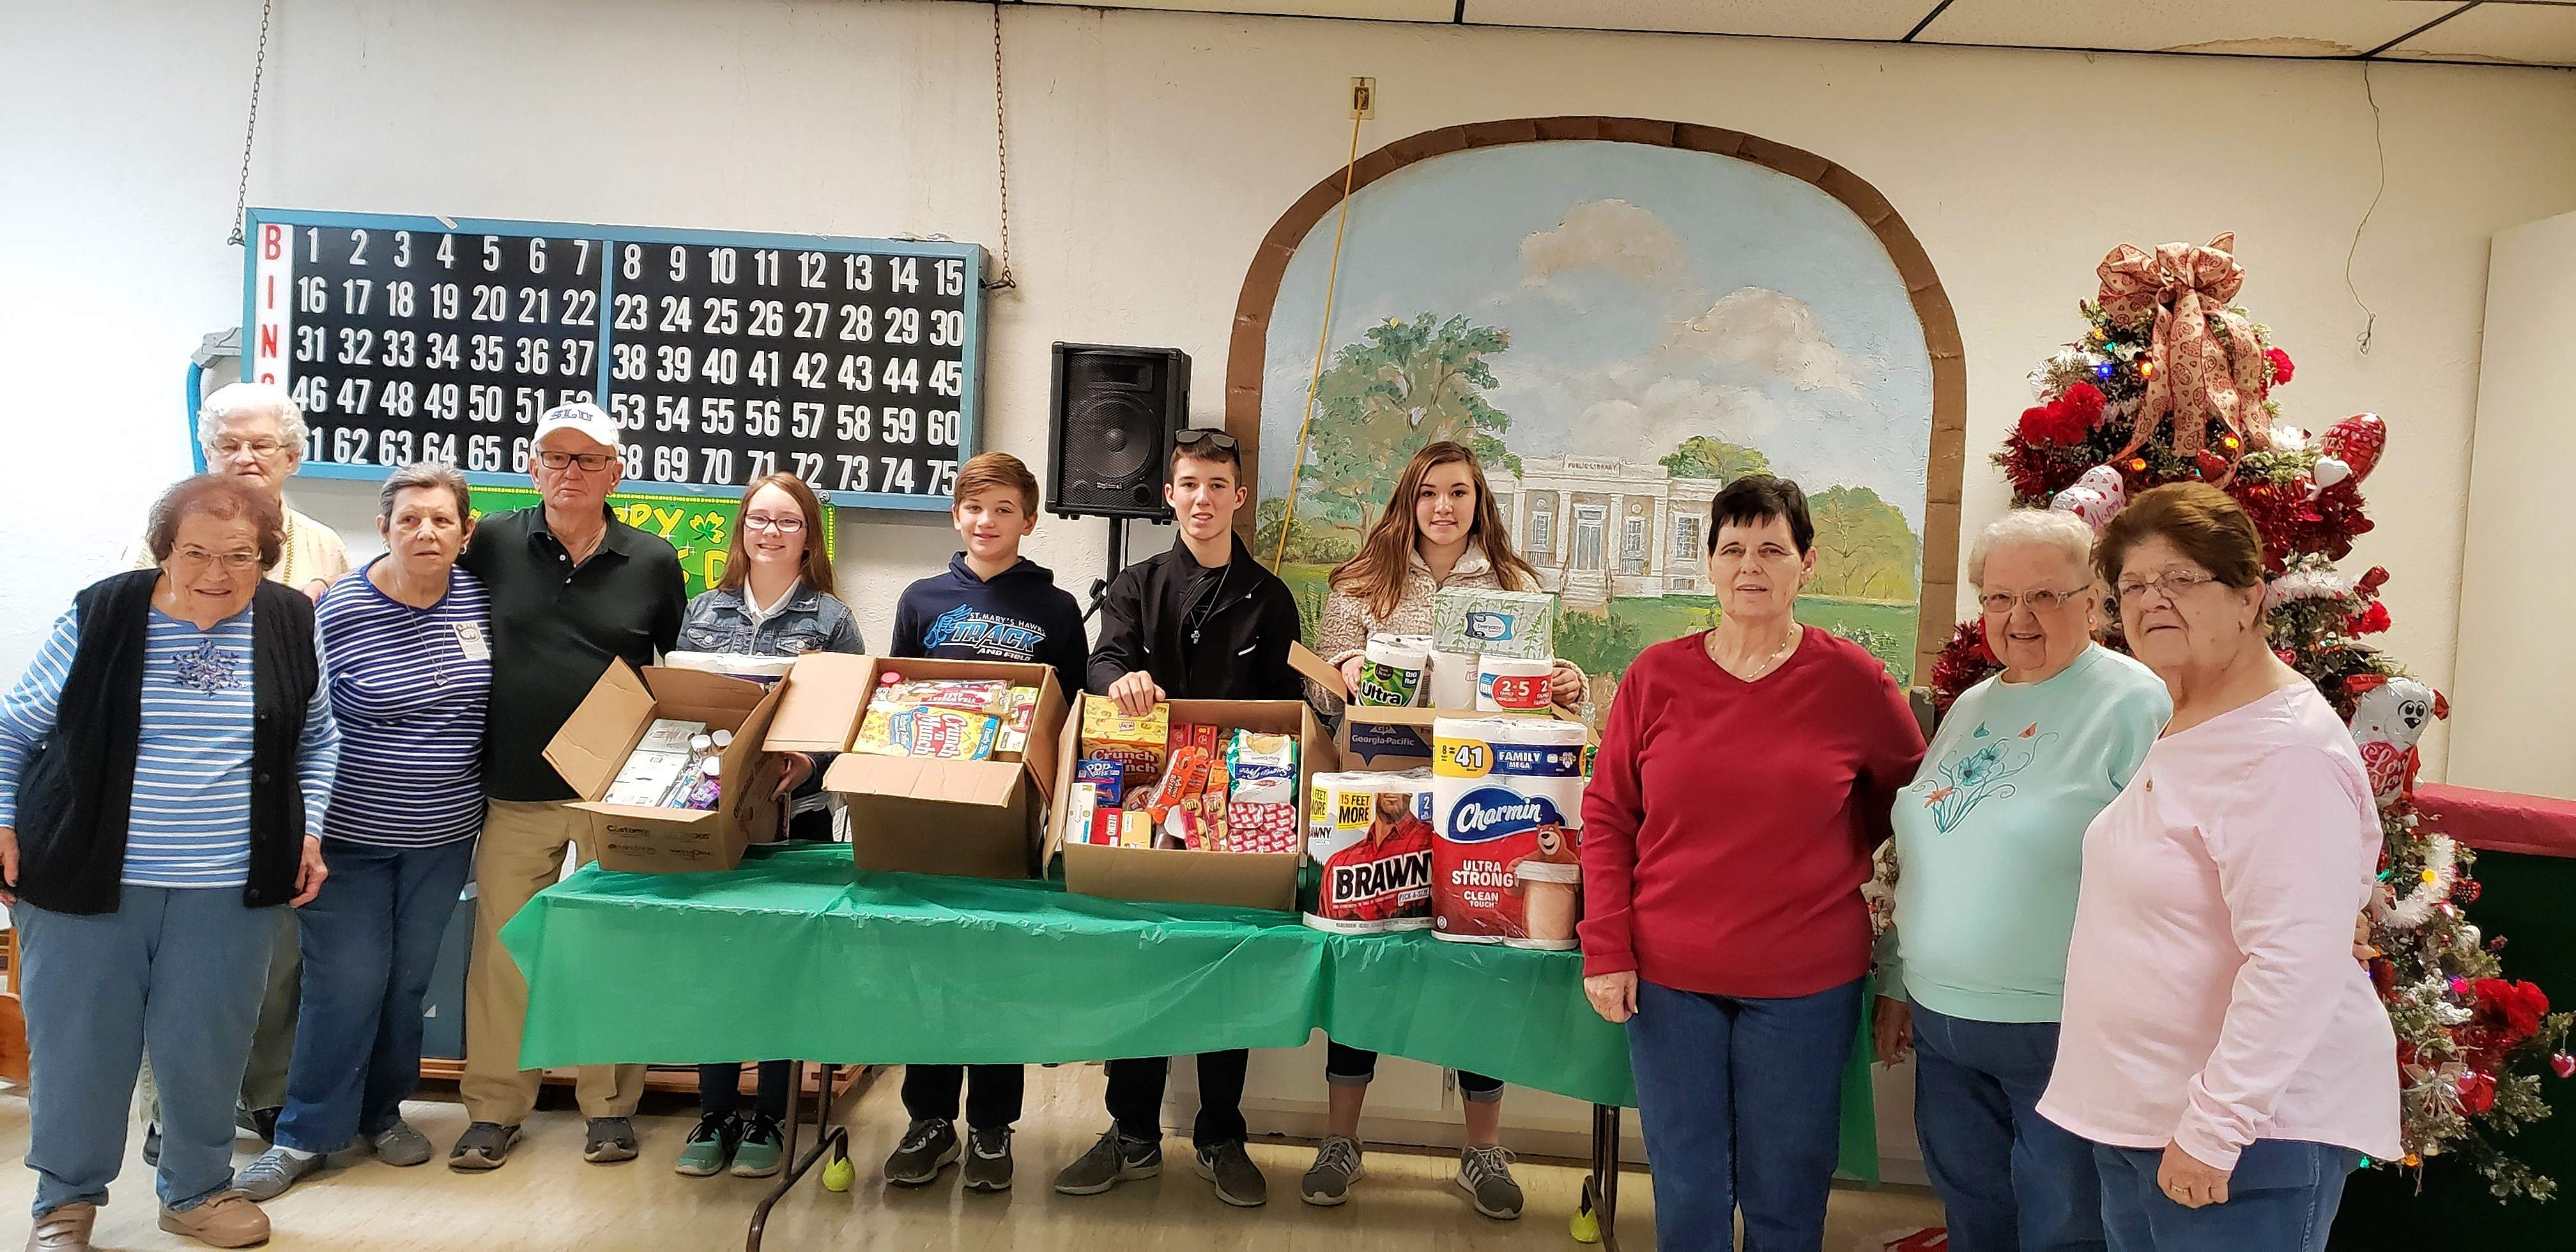 From left: Dolores Waltemate; Marlene Eckert; Donna Phelps; Bill Heffernan (senior center bingo caller); Elseah Congiardo, 7th grade; Kolton Jany, 6th grade; Koby Jany, 8th grade; Paige Vasquez, 8th grade; Carol Holley; Eileen Crowder and Judi Rice.